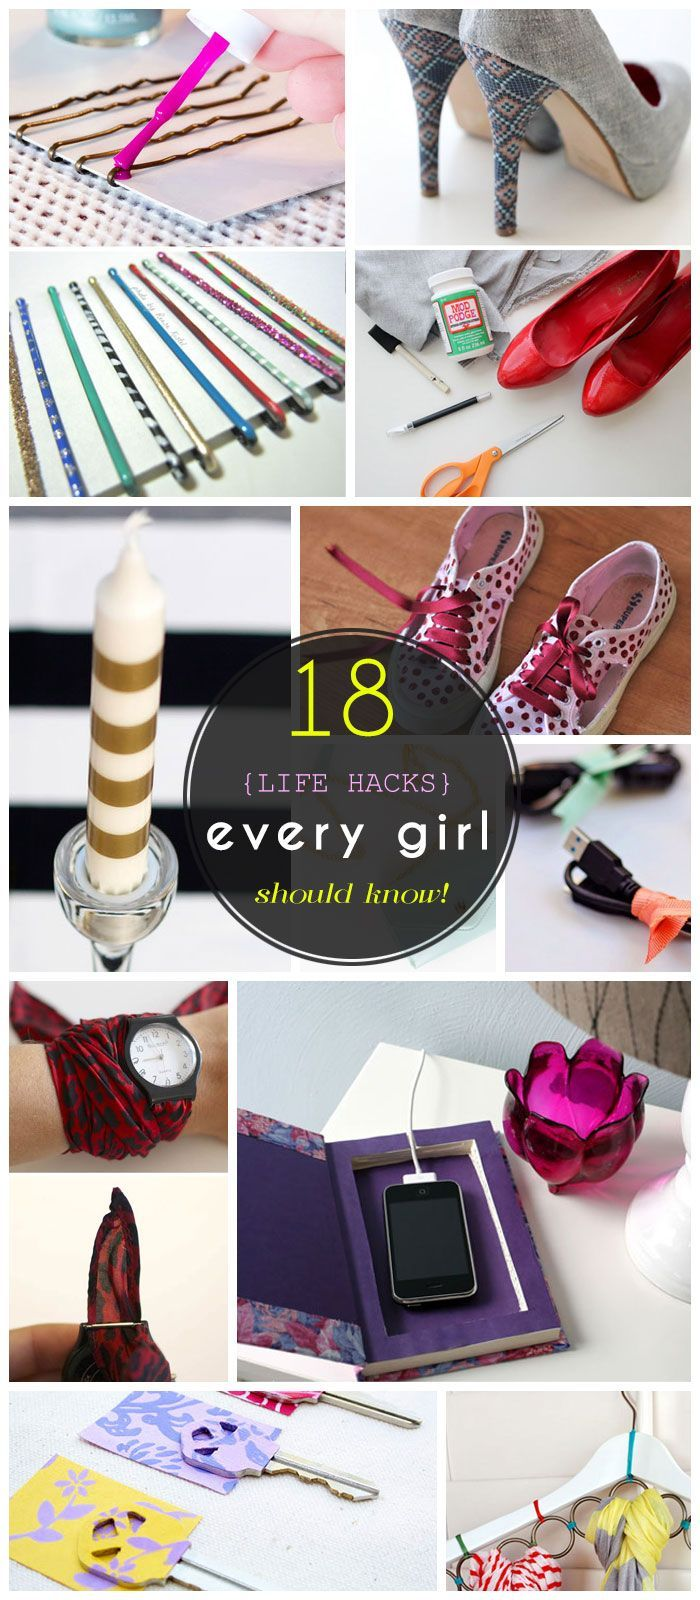 26 Life Hacks Every Girl Should Know - Seriously Awesome!